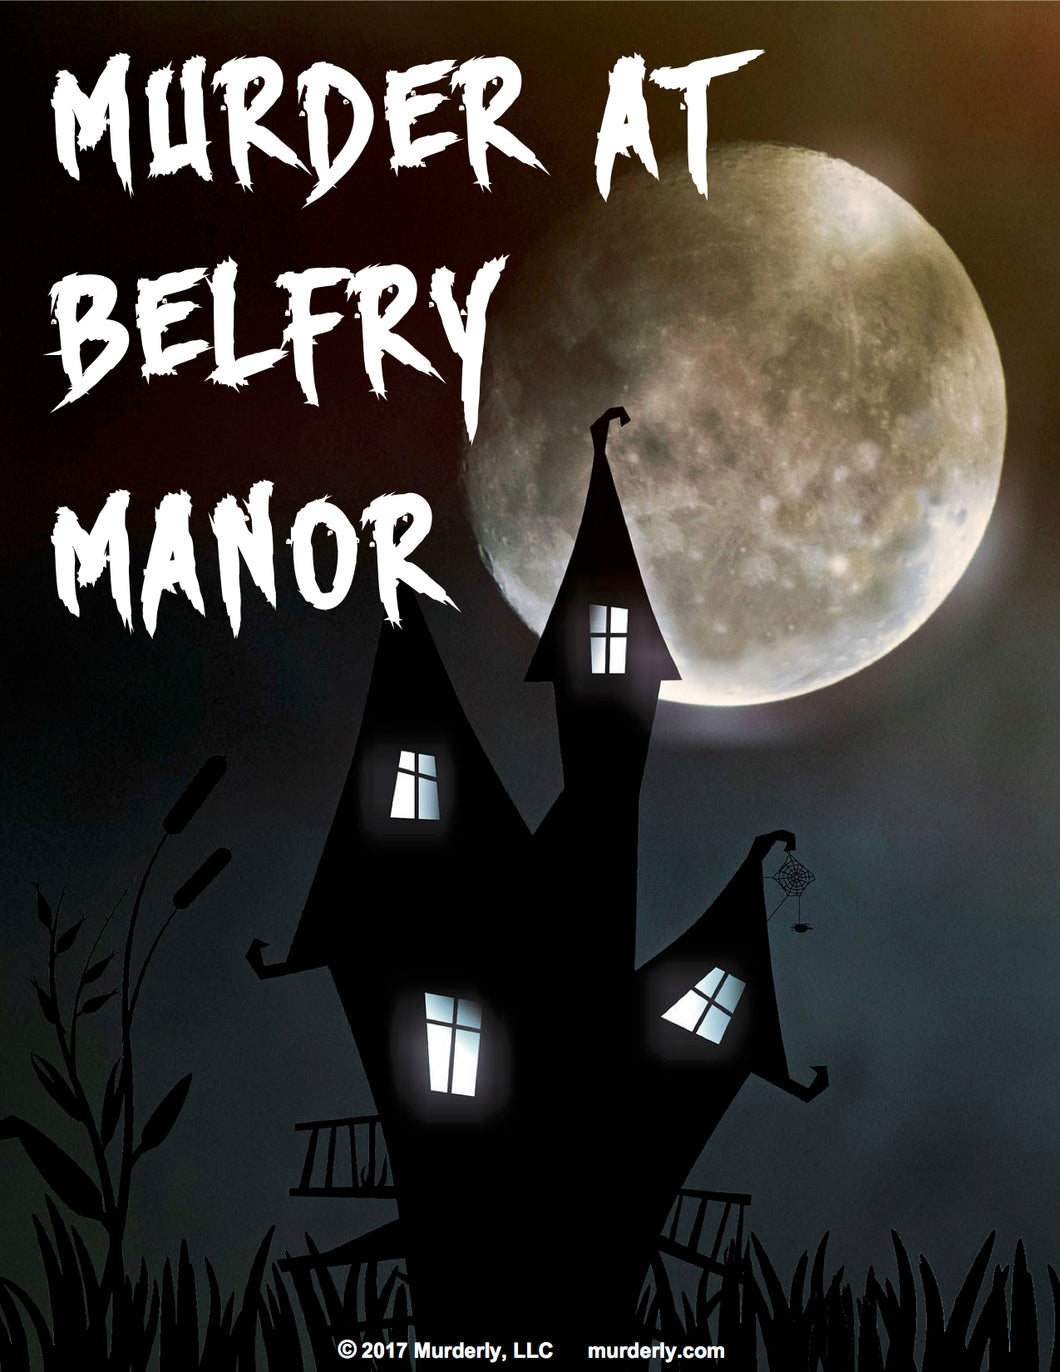 Murder at Belfry Manor - Murderly